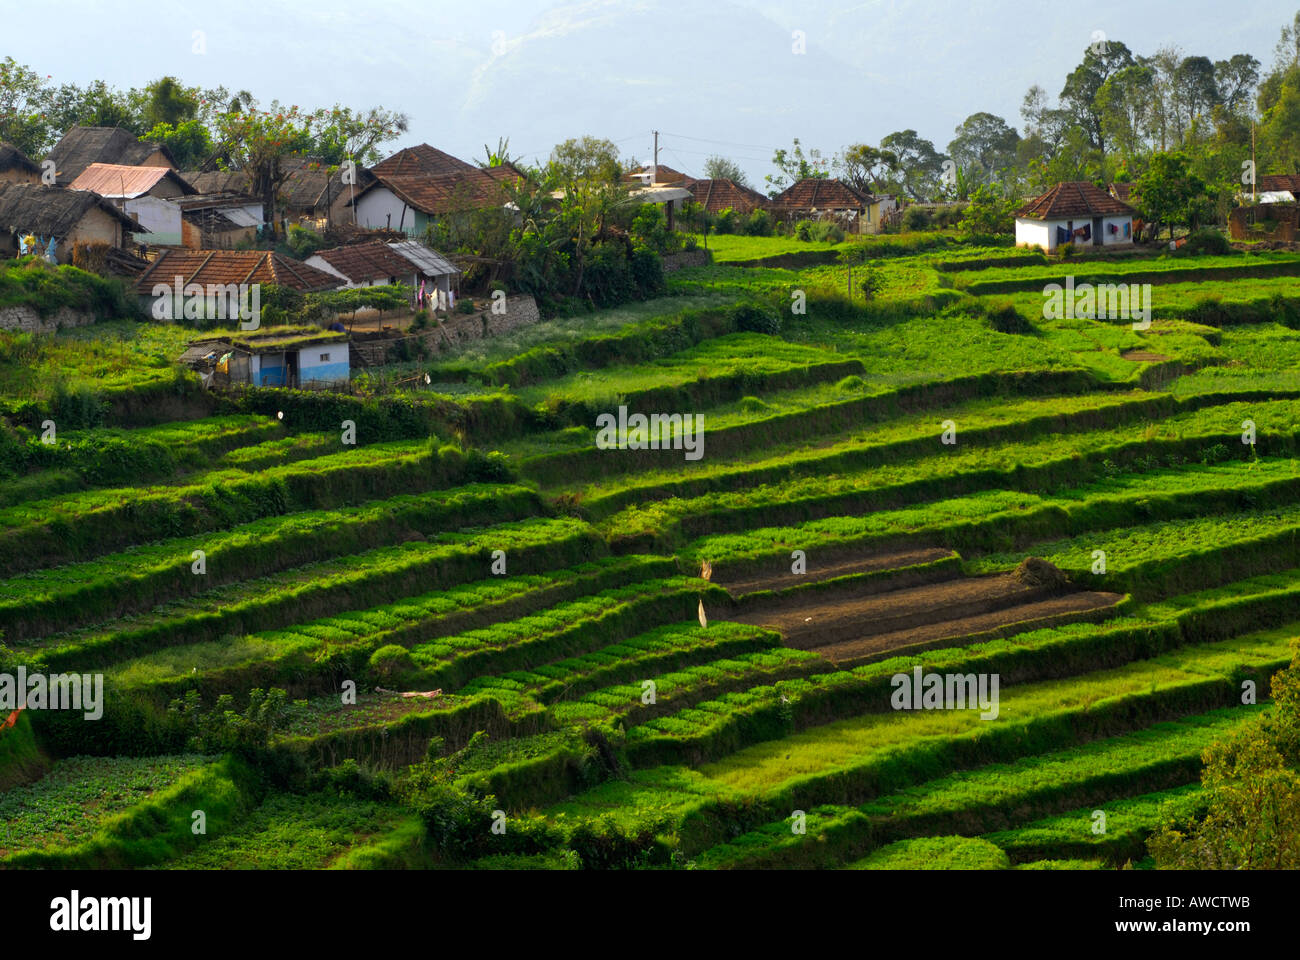 Terrace farming in koviloor near munnar kerala stock photo for Terrace cultivation